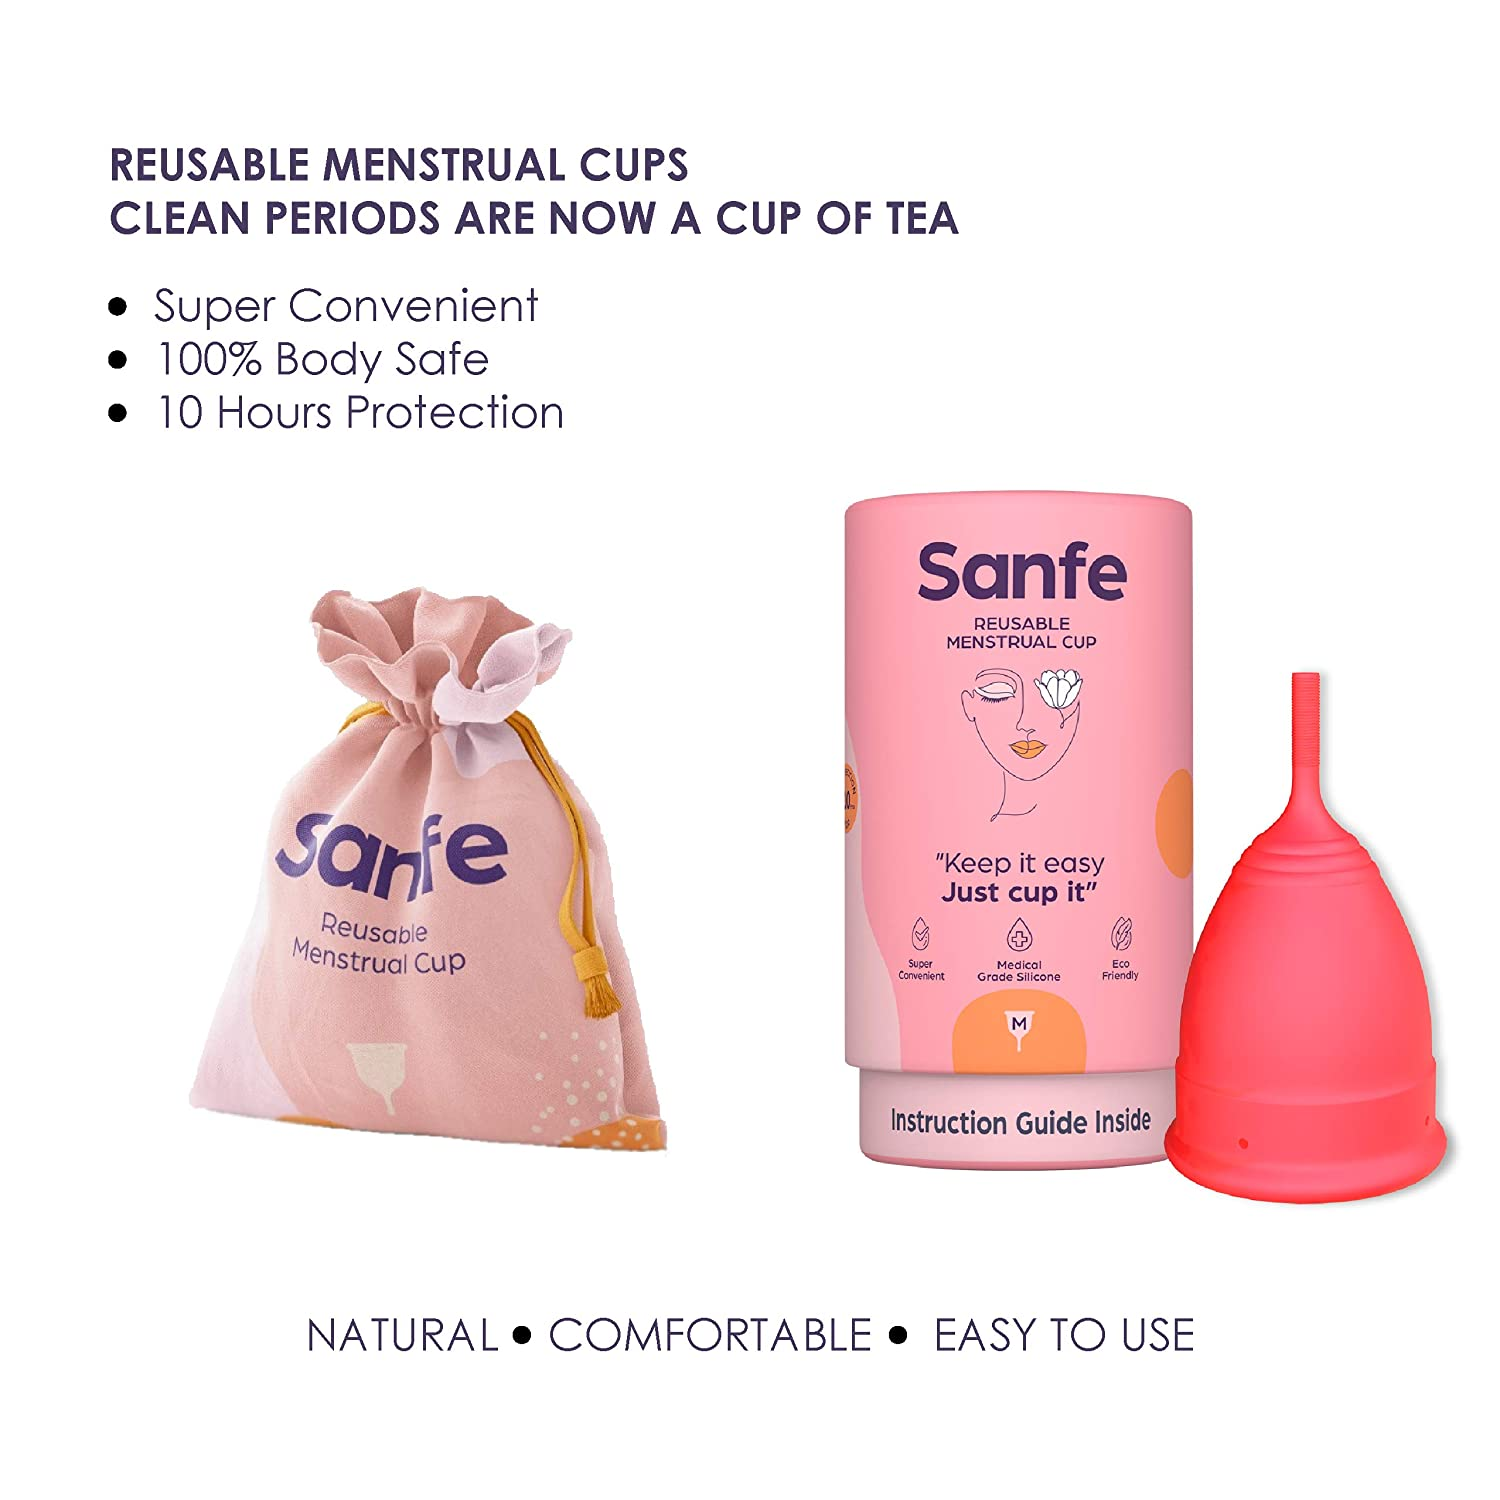 Sanfe Reusable Menstrual Cup with No Rashes, Leakage Or Odor - Premium Design for Women - Medium (Pack of 2)